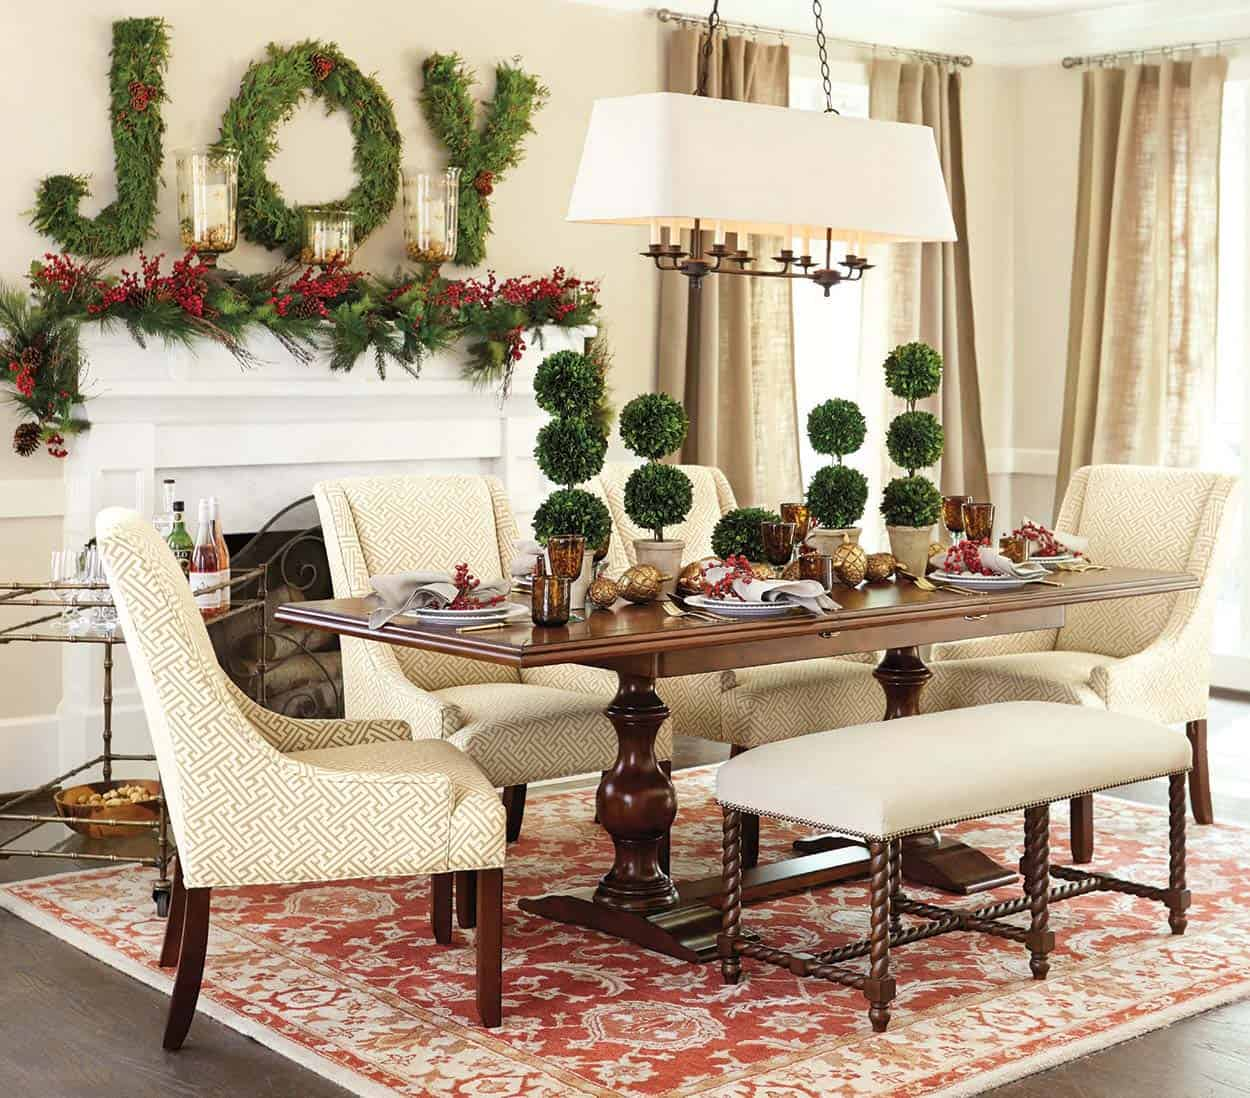 Christmas Decor Ideas Rustic Country 17 1 Kindesign